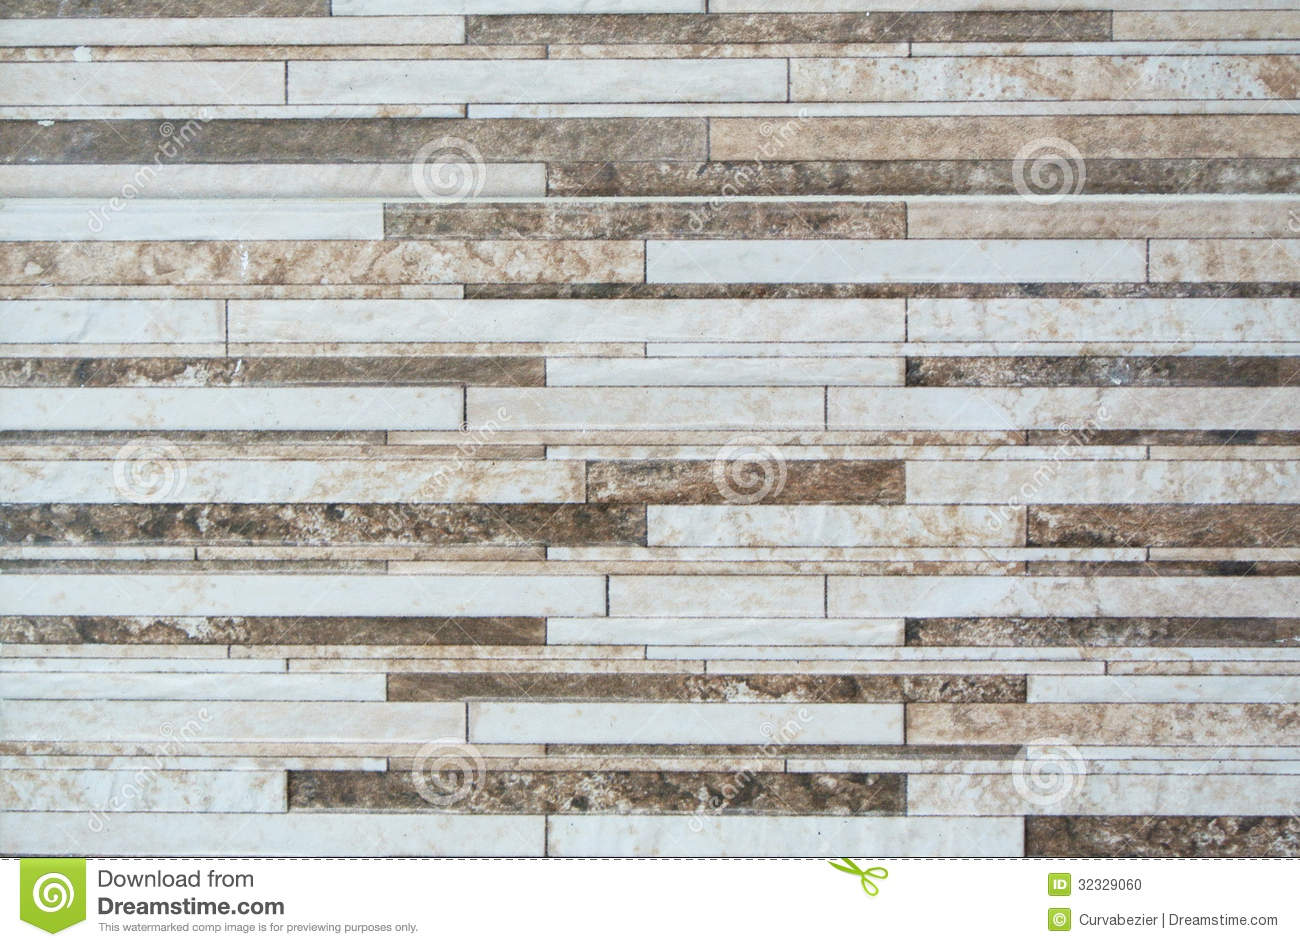 Cool marble stone wall texture